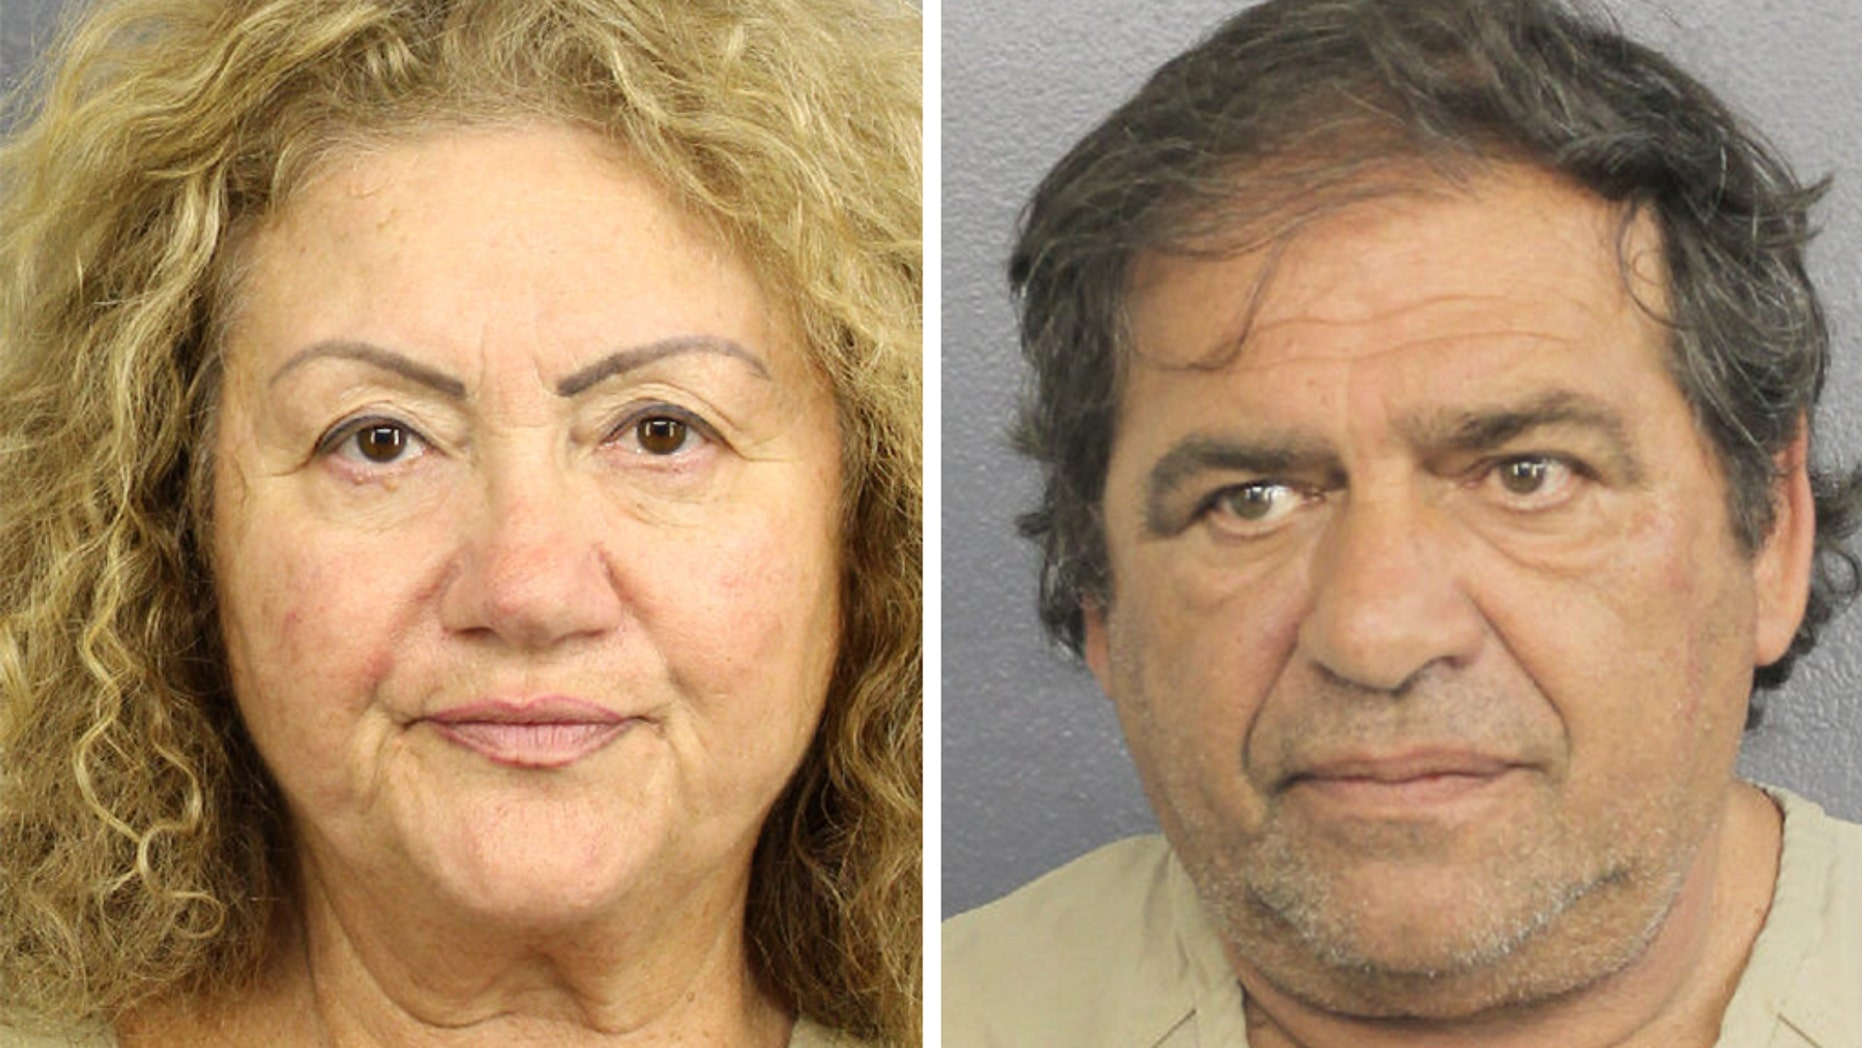 Ida Shafir, 67, and Nick Bogomolsky, 61, were arrested at Fort Lauderdale-Hollywood International Airport in Florida on Tuesday, according to the sheriff's office.